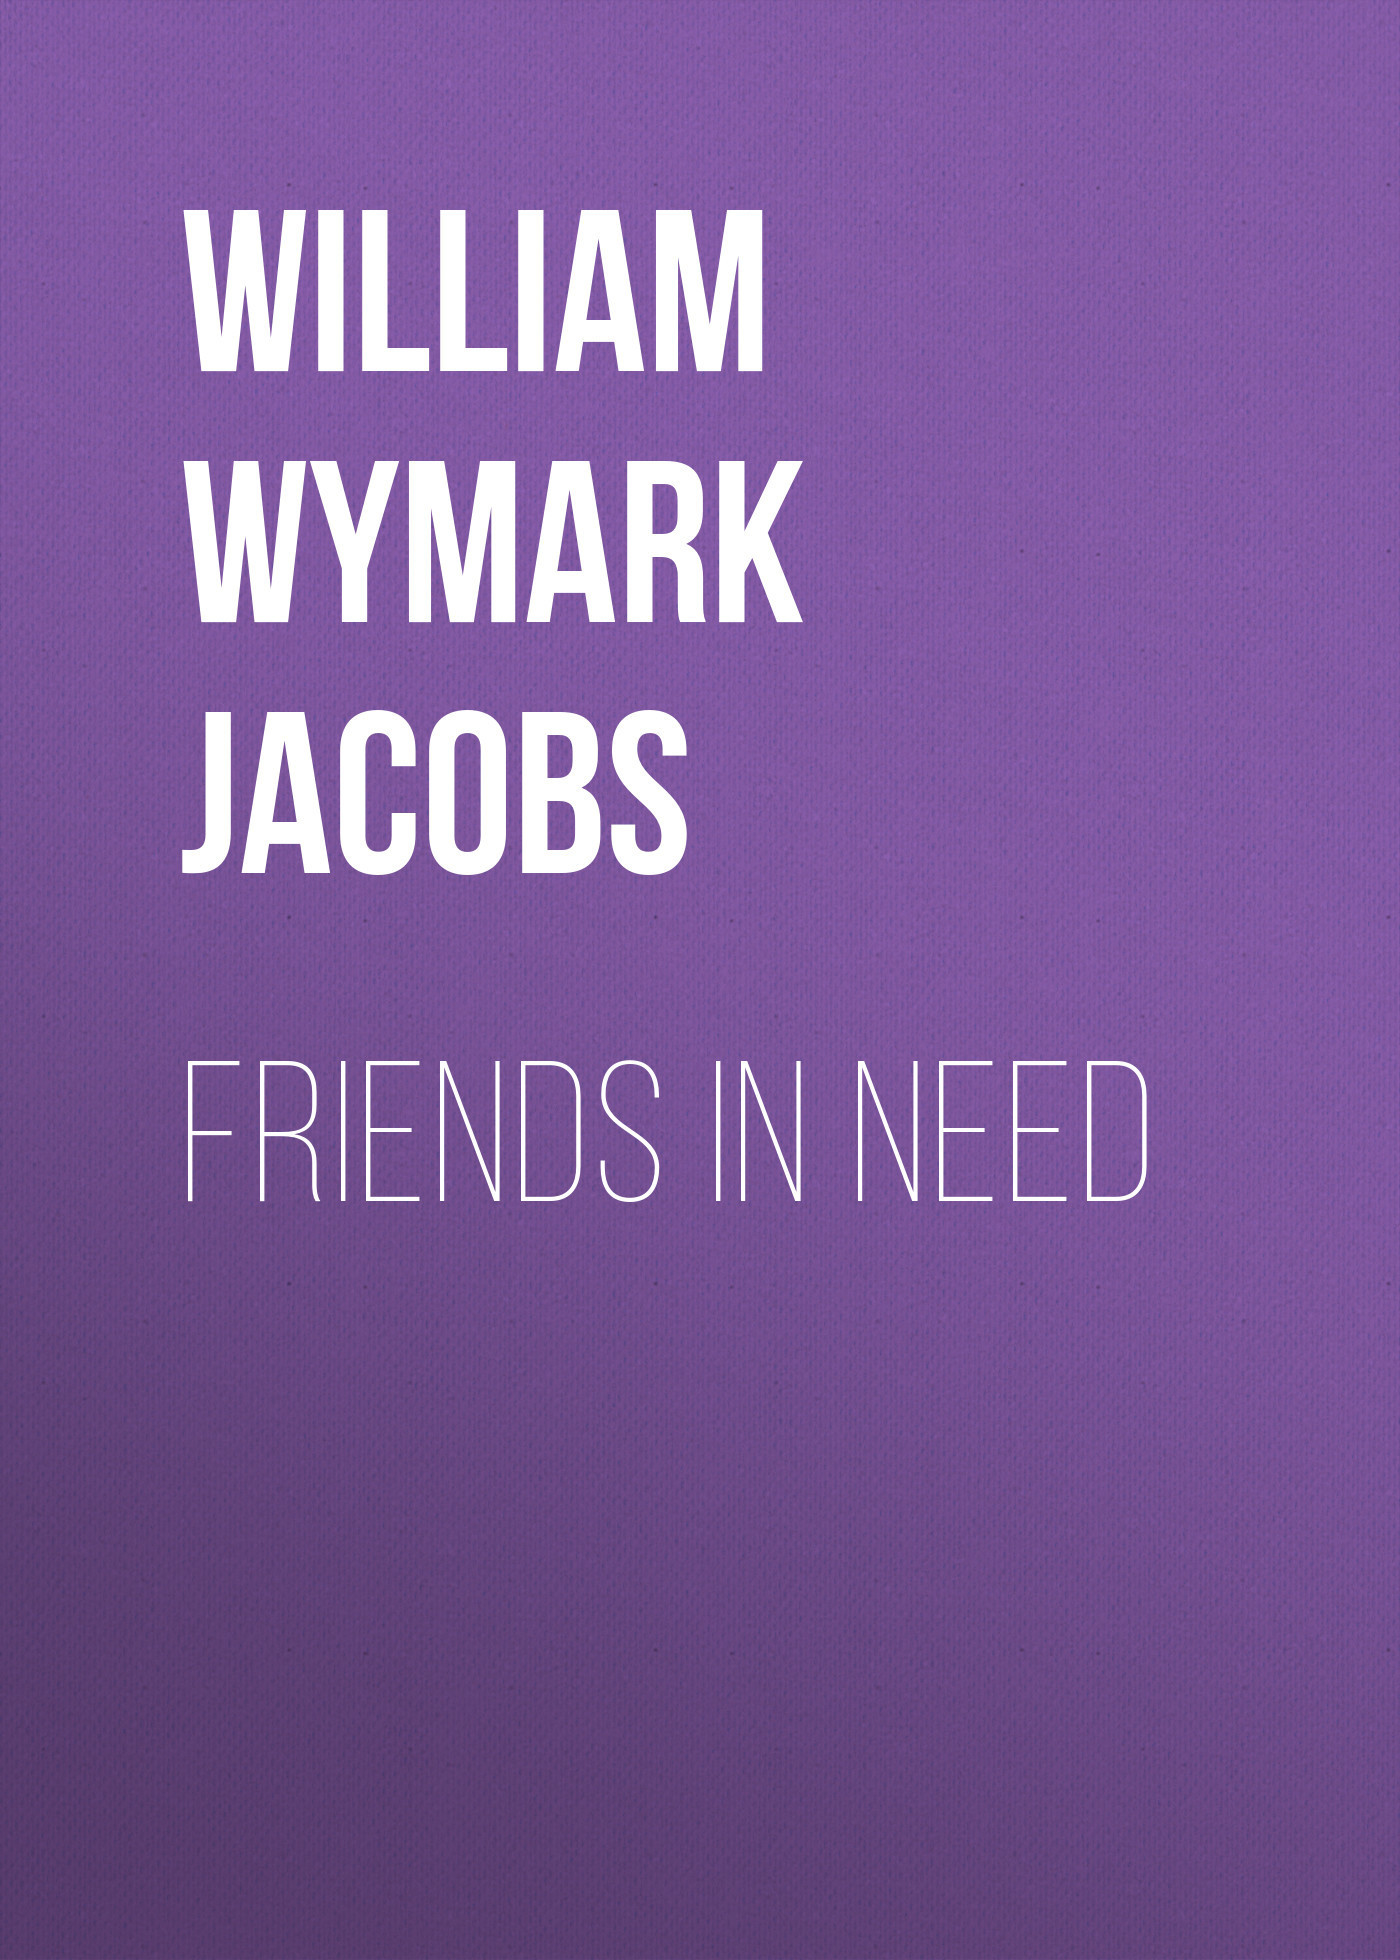 William Wymark Jacobs Friends in Need orthodontic treatment need in lithuania